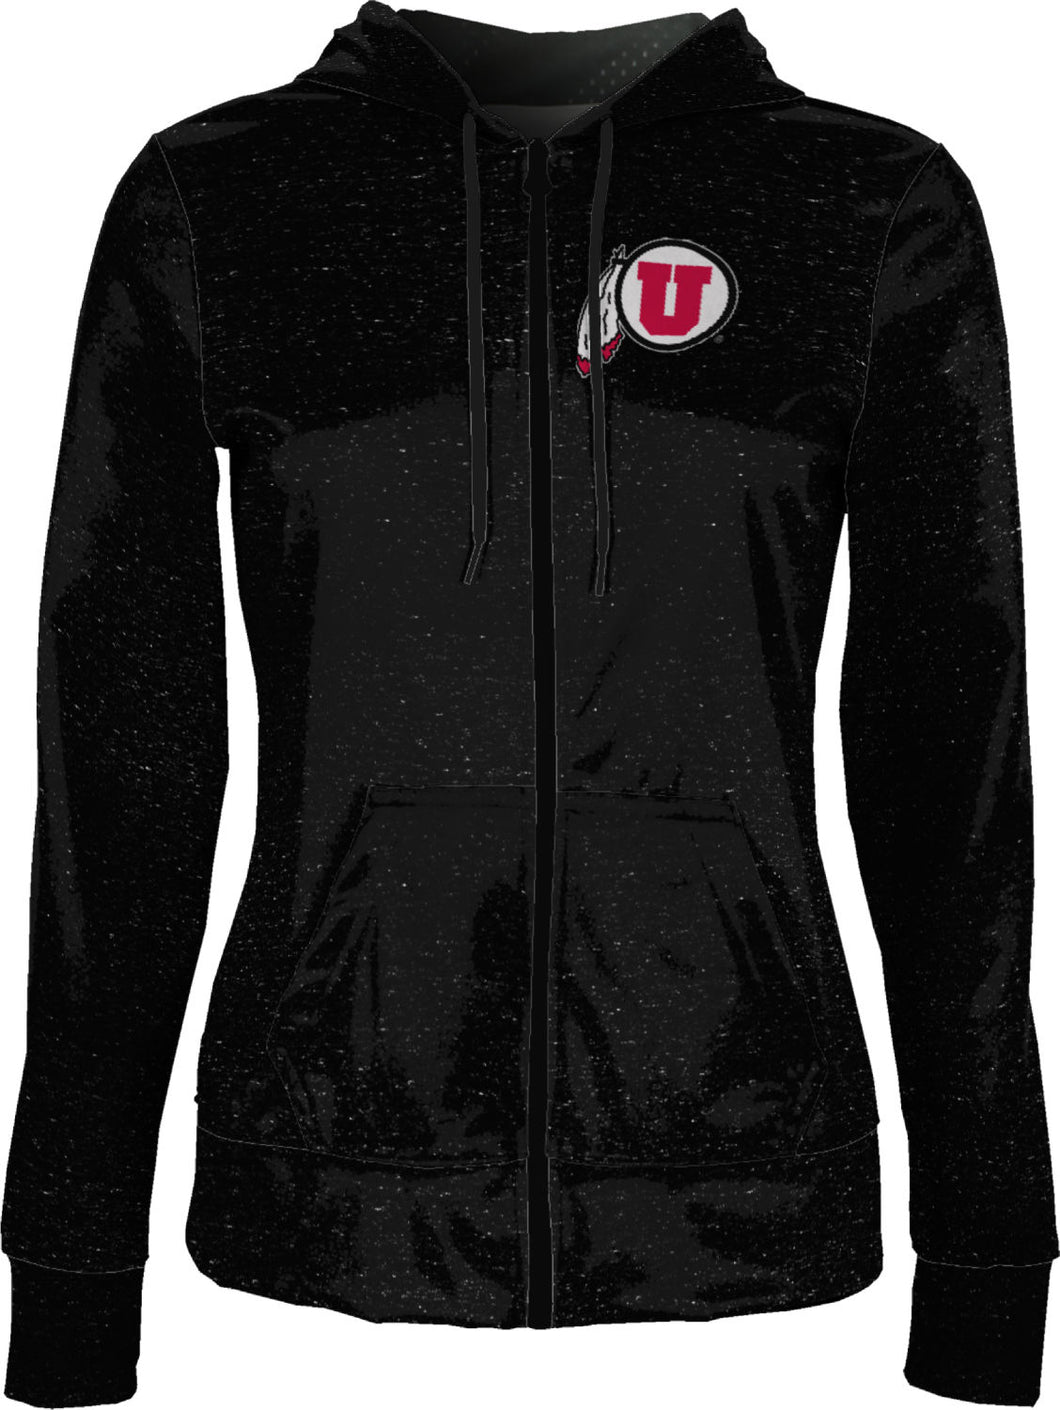 University of Utah: Women's Full Zip Hoodie - Heather